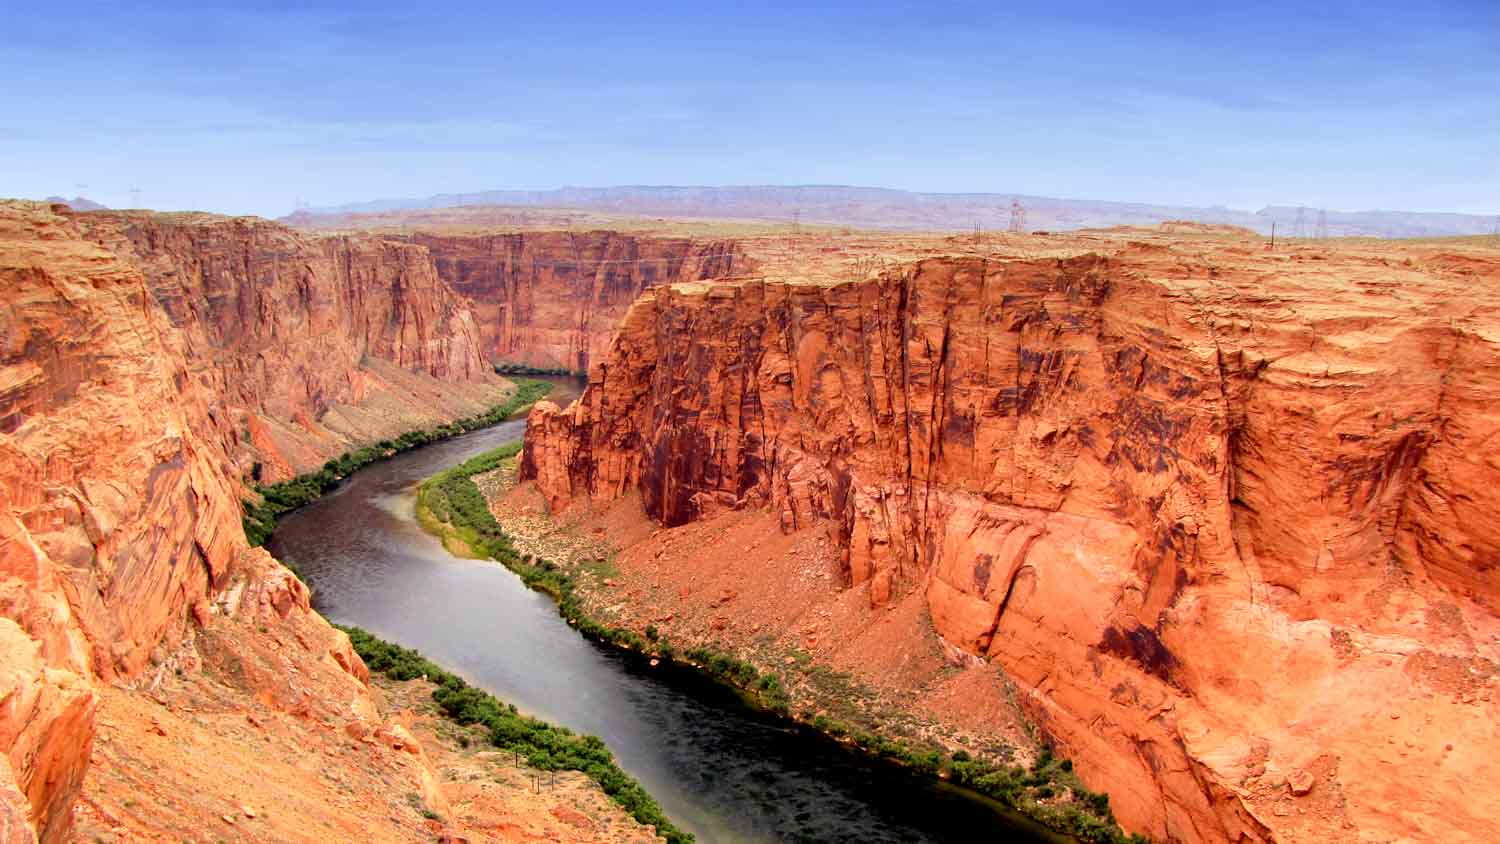 The emergence of the Little Colorado River